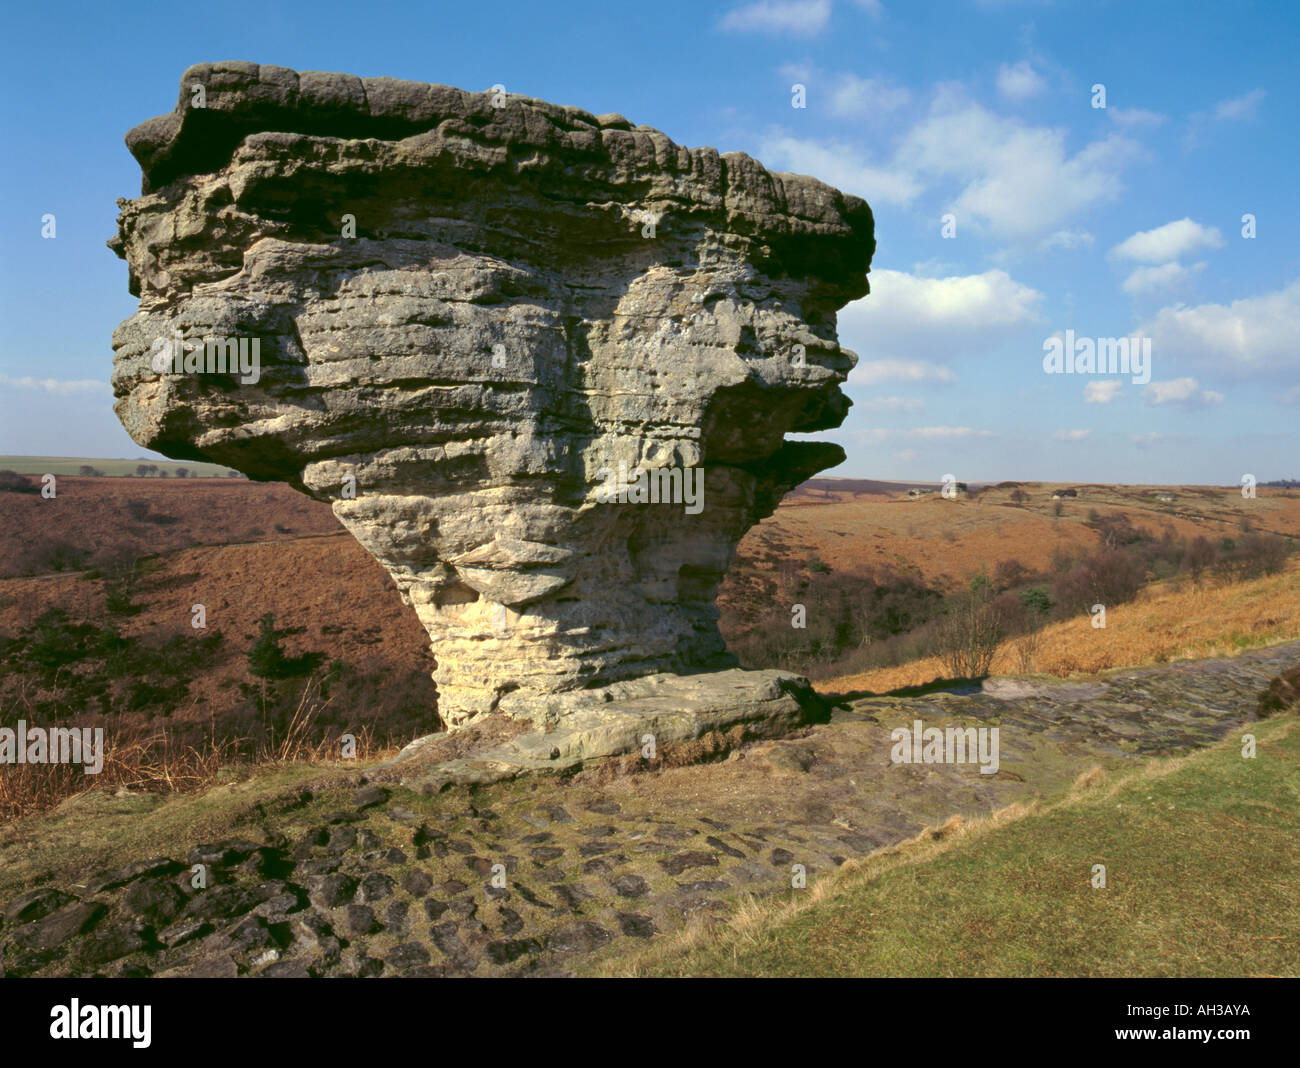 york weather. Wind And Weather Eroded Sandstone Rock; Low Bride Stone, Dalby Forest, North York